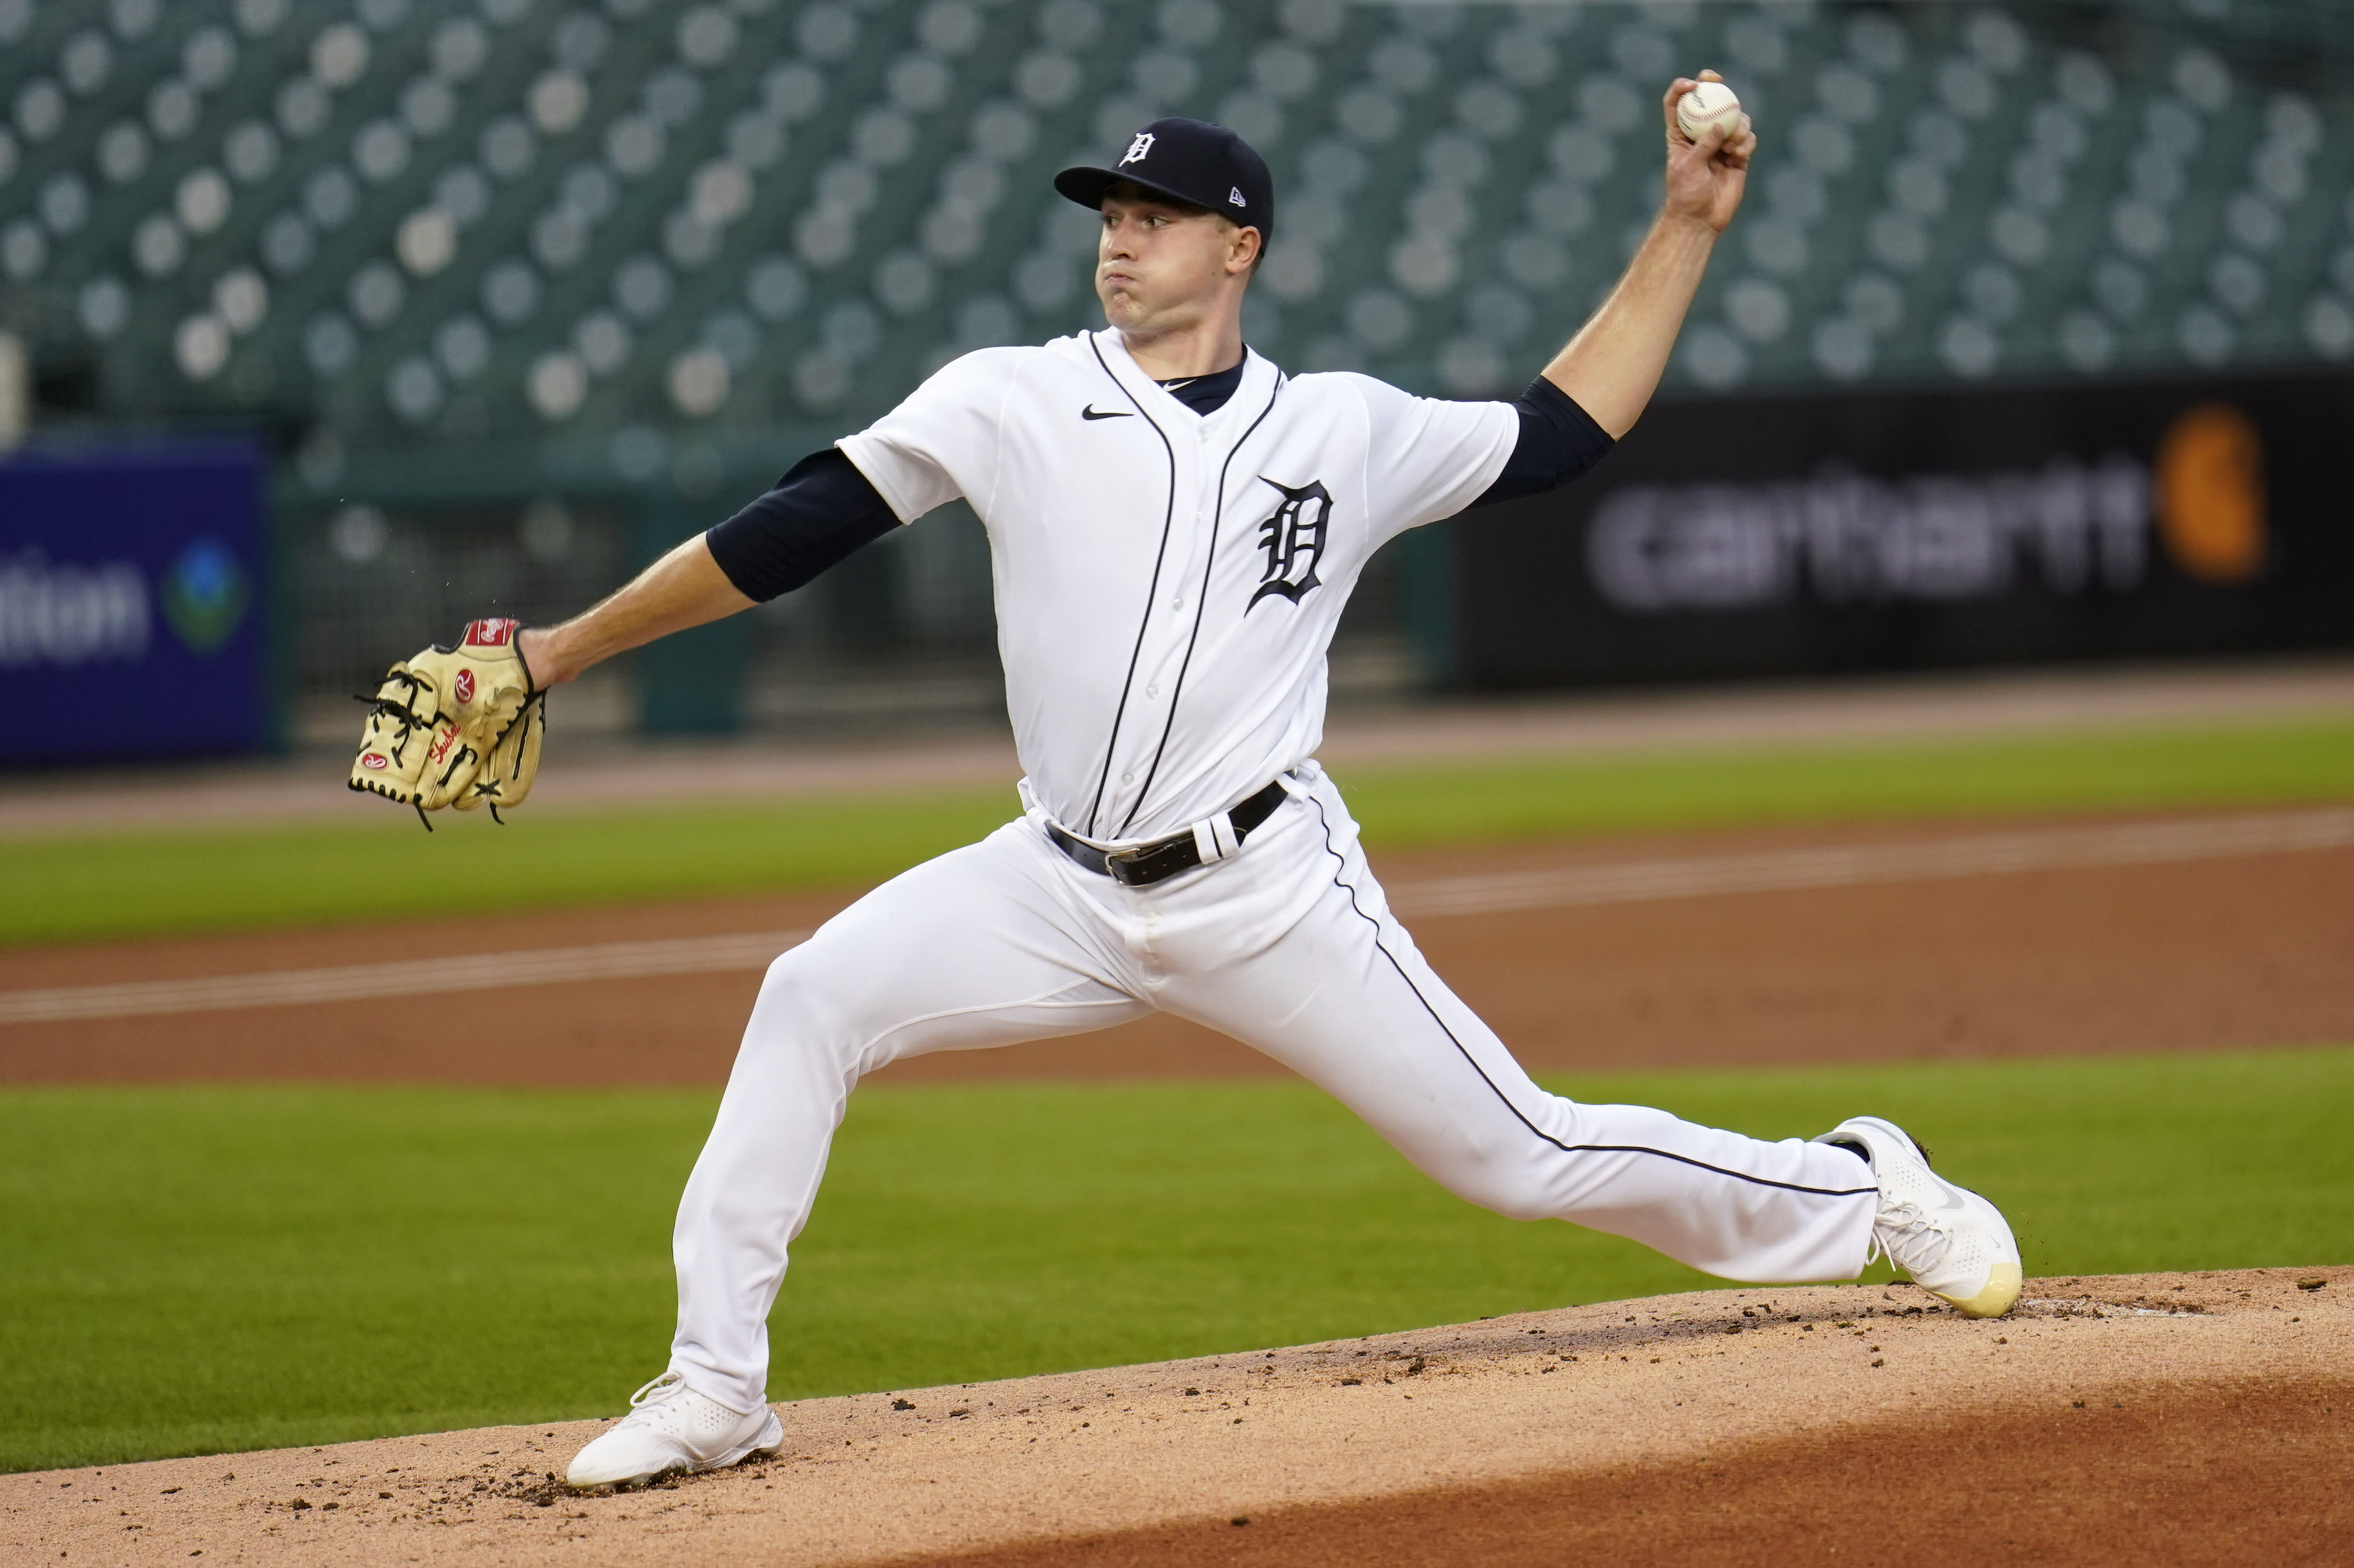 Detroit Tigers pitcher Tarik Skubal throws against the Kansas City Royals in the first inning of a baseball game in Detroit, Wednesday, Sept. 16, 2020. (AP Photo/Paul Sancya)